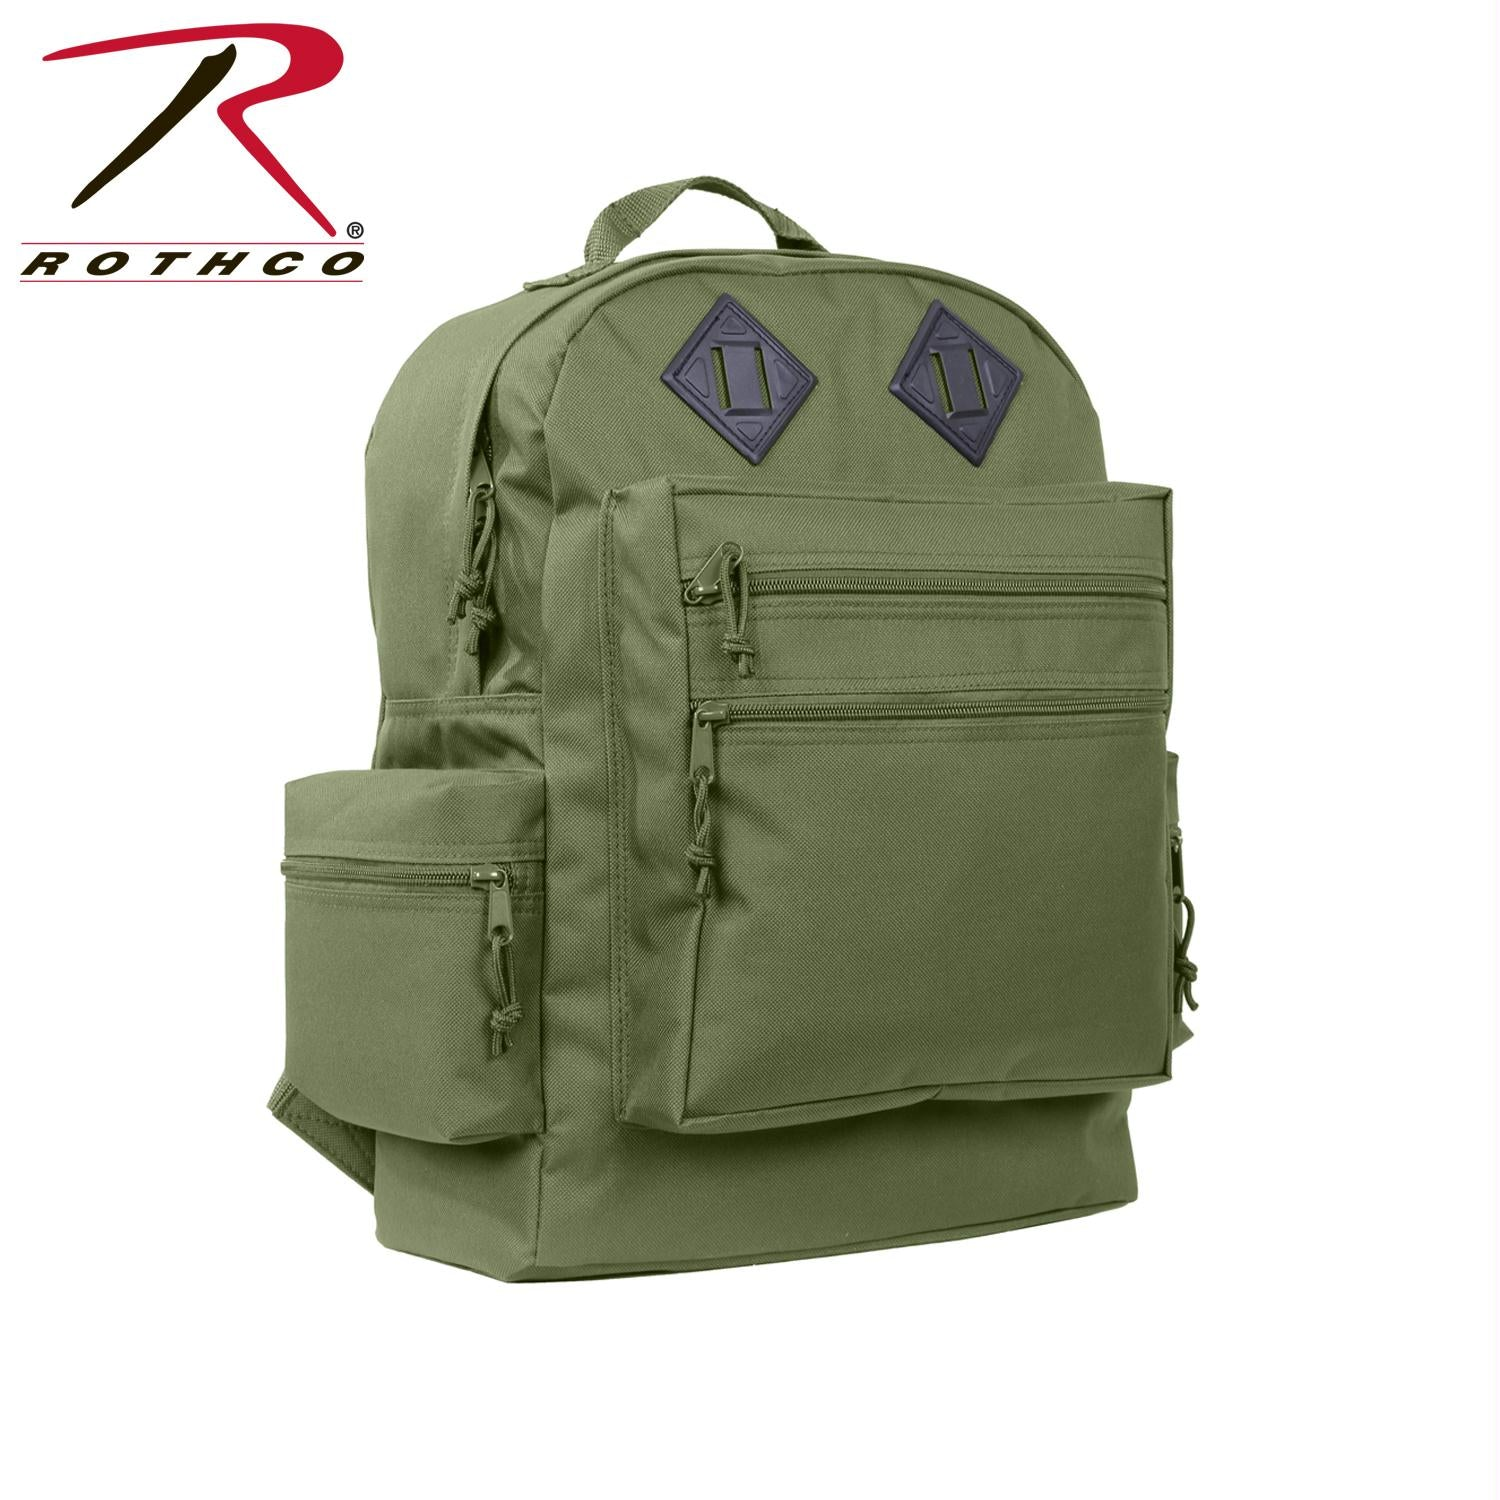 Rothco Deluxe Day Pack - Olive Drab